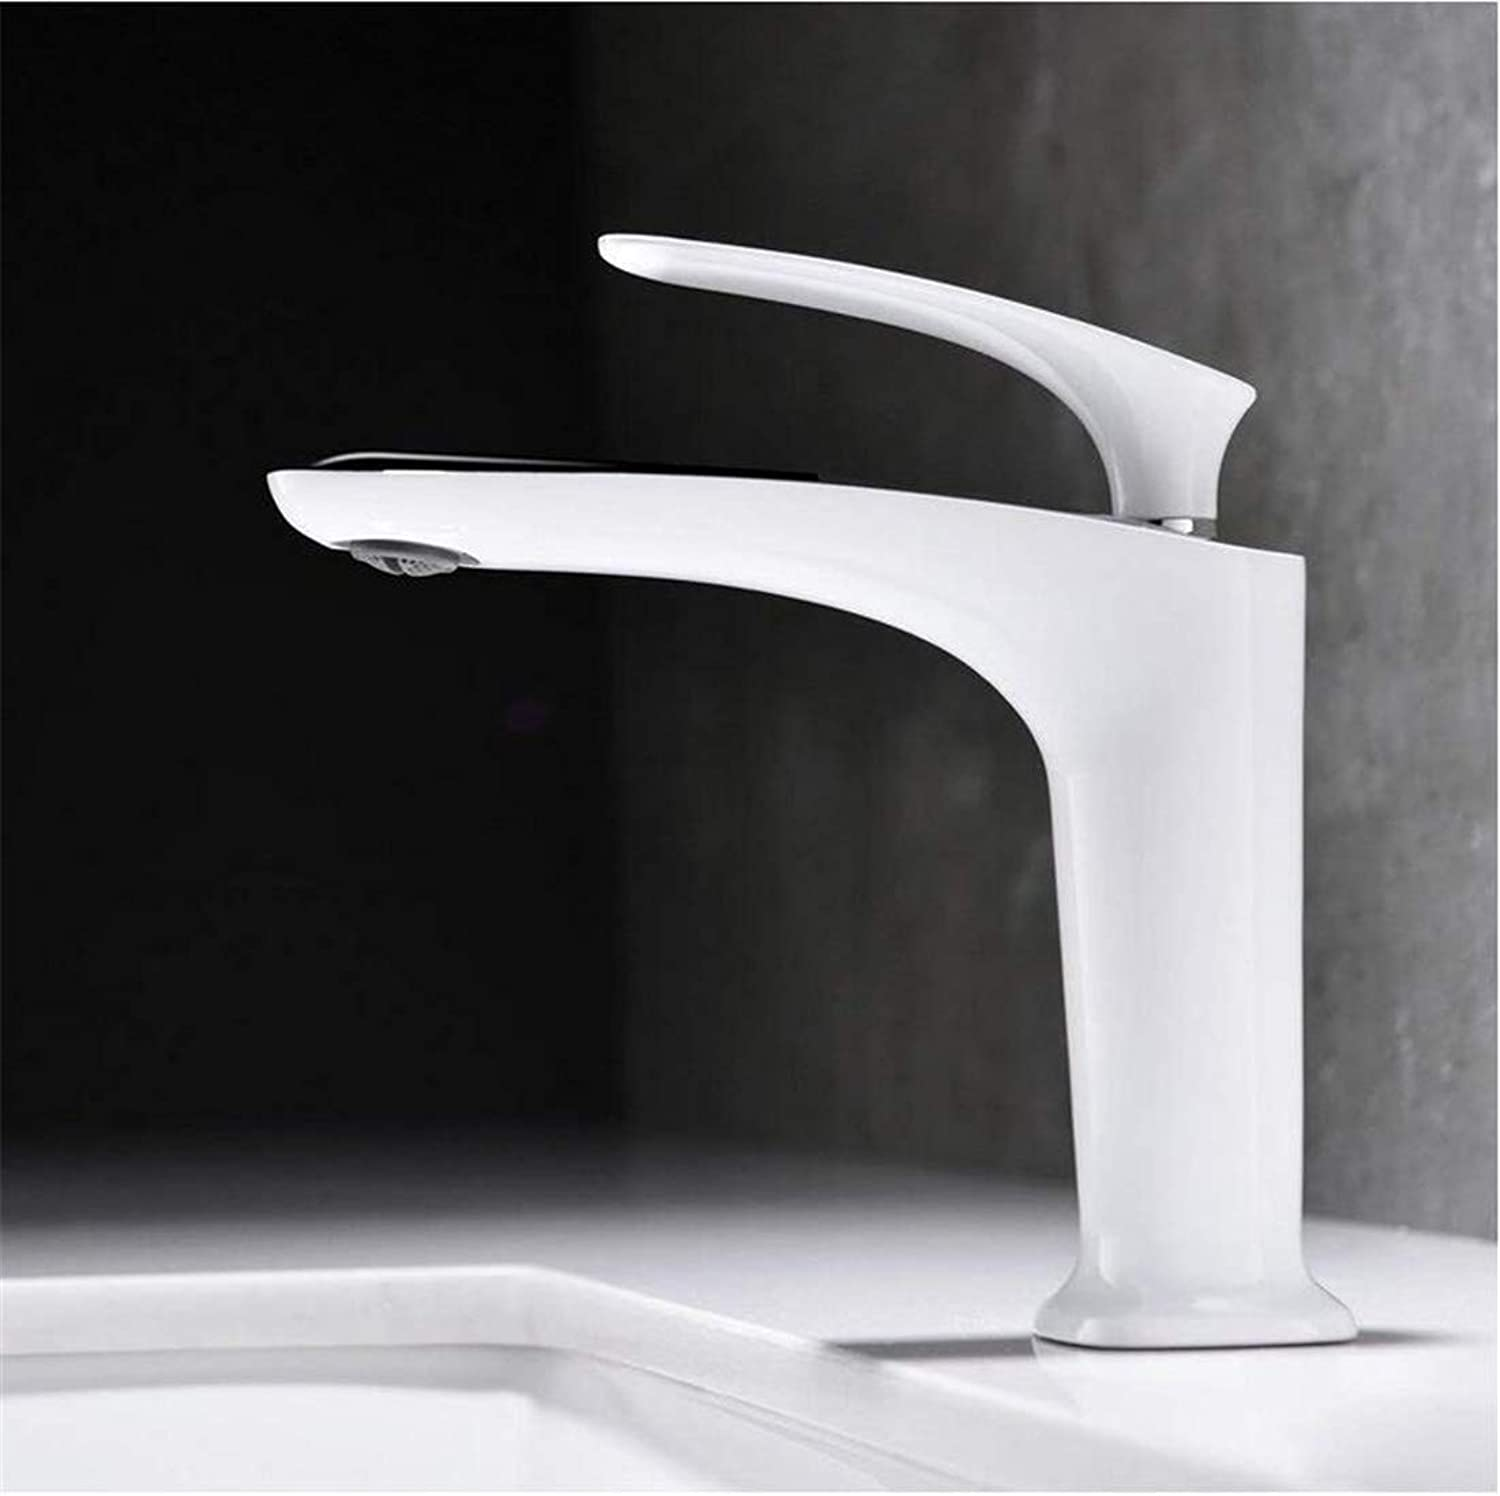 Retro Kitchen Hot and Cold Water 360 Degree redation Hot and Cold Modern Mixer Faucet White Tap for Bathroom Sink 47